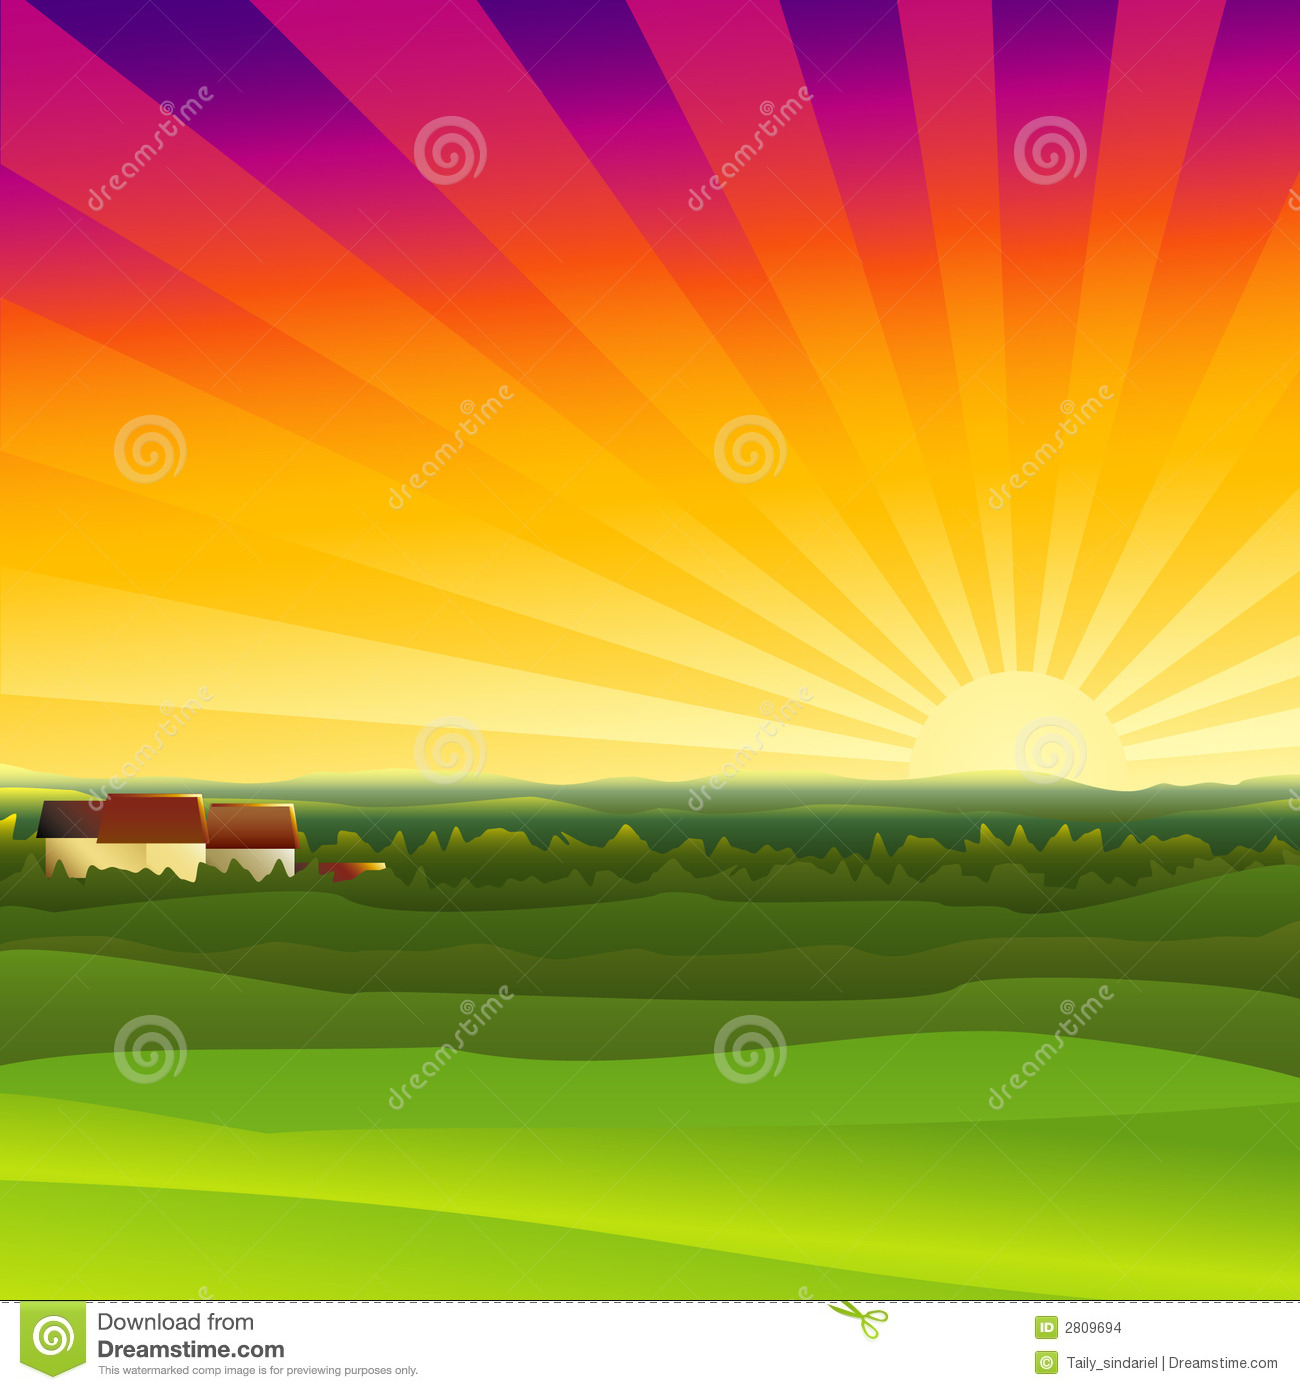 Animated Sunset Clipart.